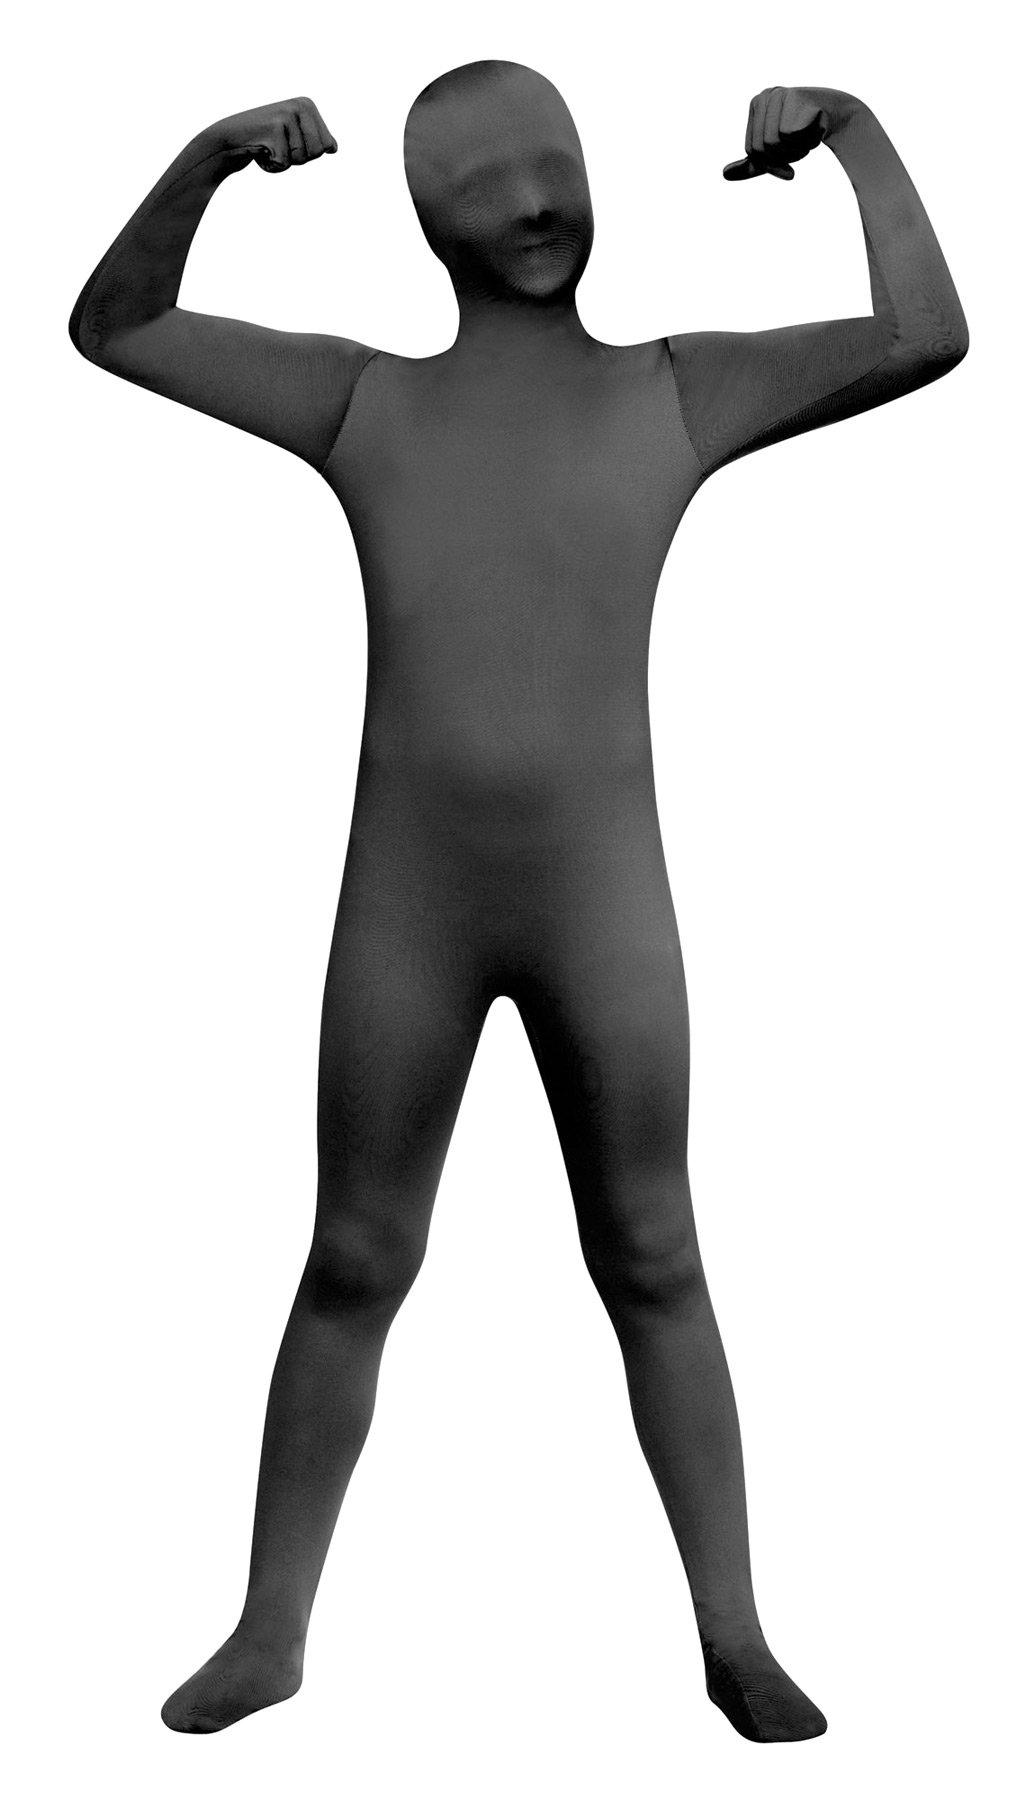 - 61onpBraqJL - Skin Suit Bodysuit Zentai Funny Theme Fancy Dress Child Halloween Costume